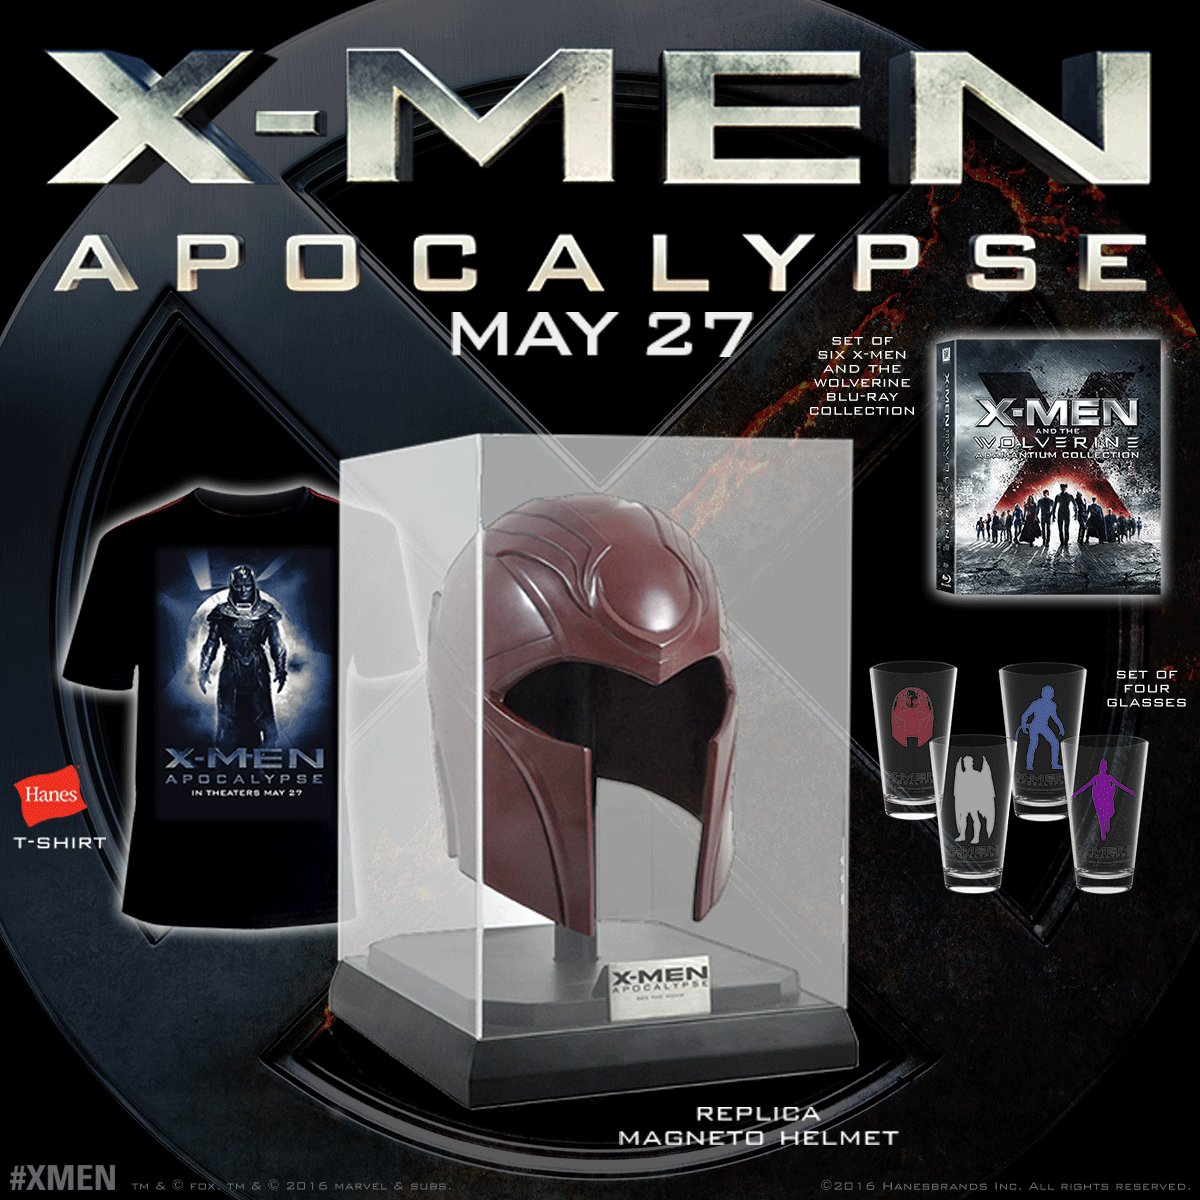 FOLLOW & RT for a chance to #win this @XMenMovies prize pack. Get your tickets NOW: https://t.co/AvKSJDlAUK https://t.co/rHGccdxQZ6